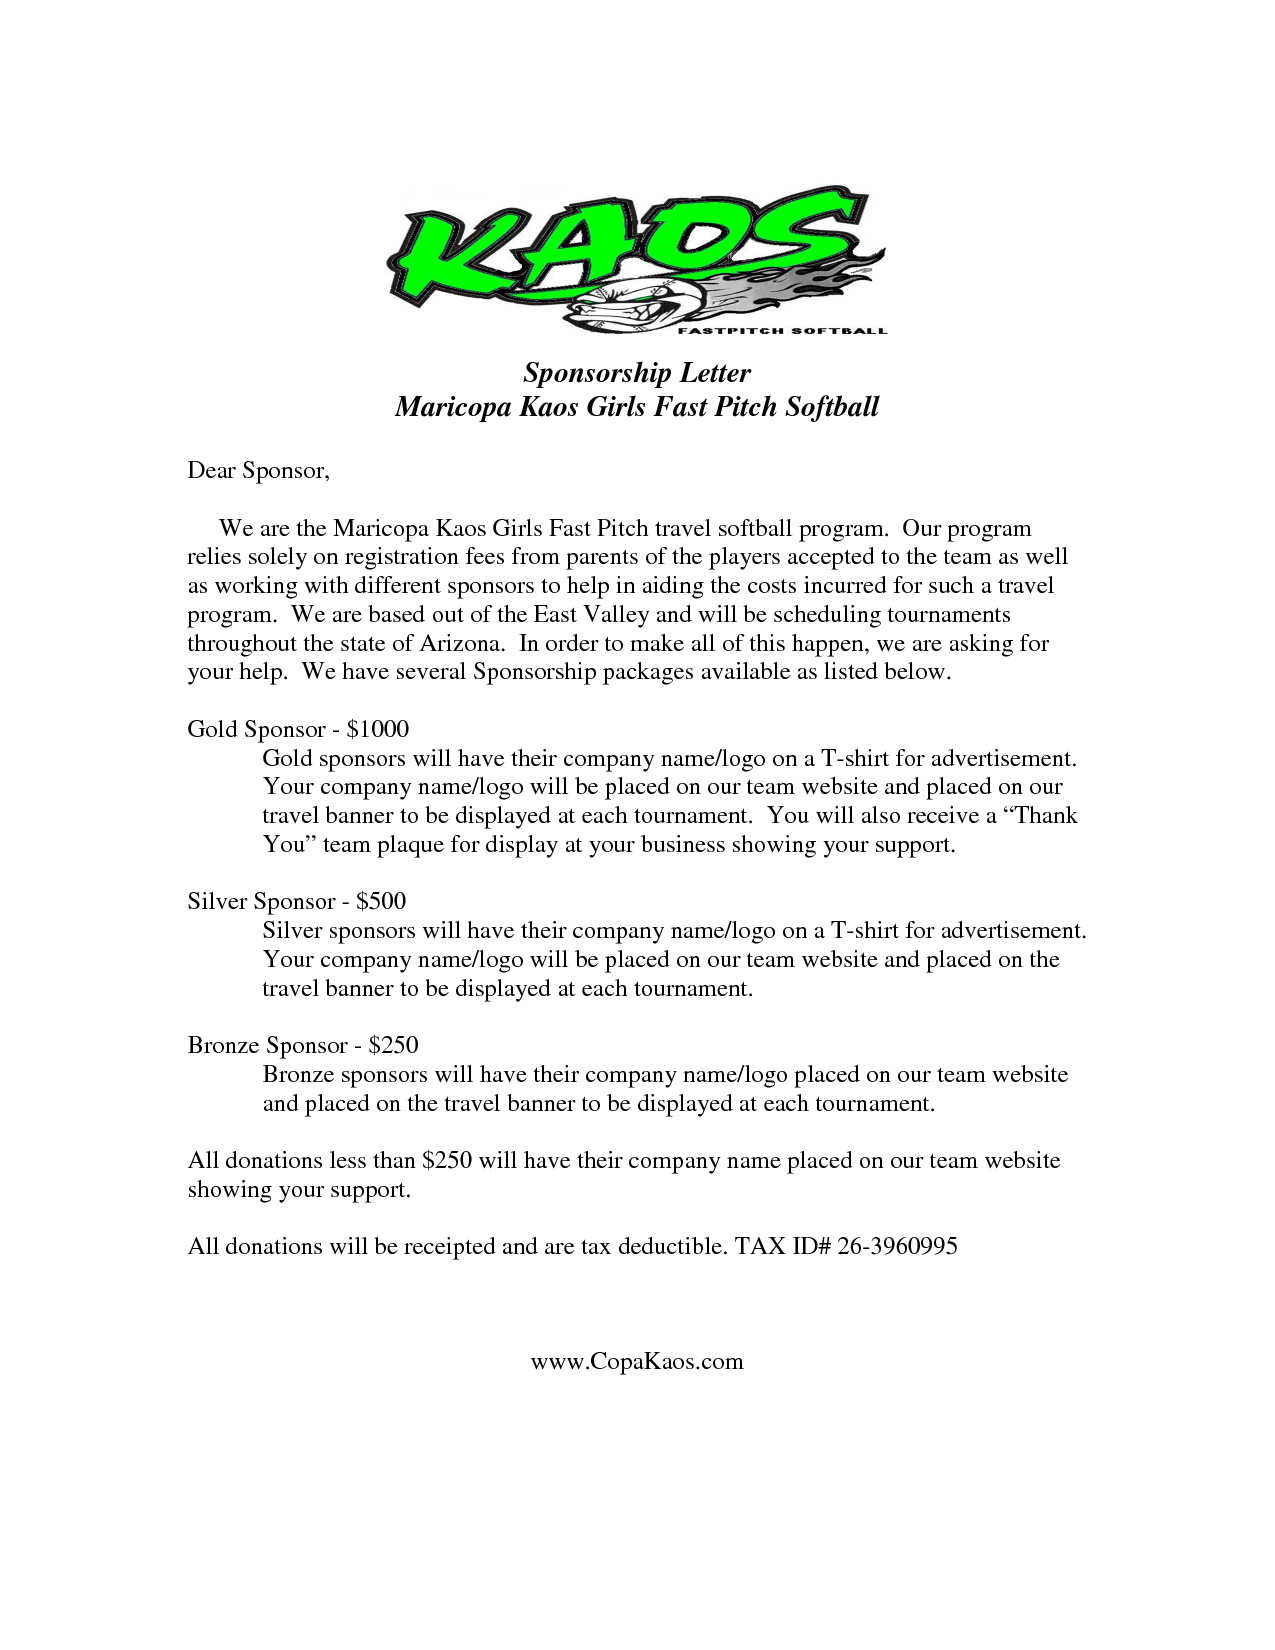 Golf tournament Donation Letter Template - Image Result for Sample Sponsor Request Letter Donation